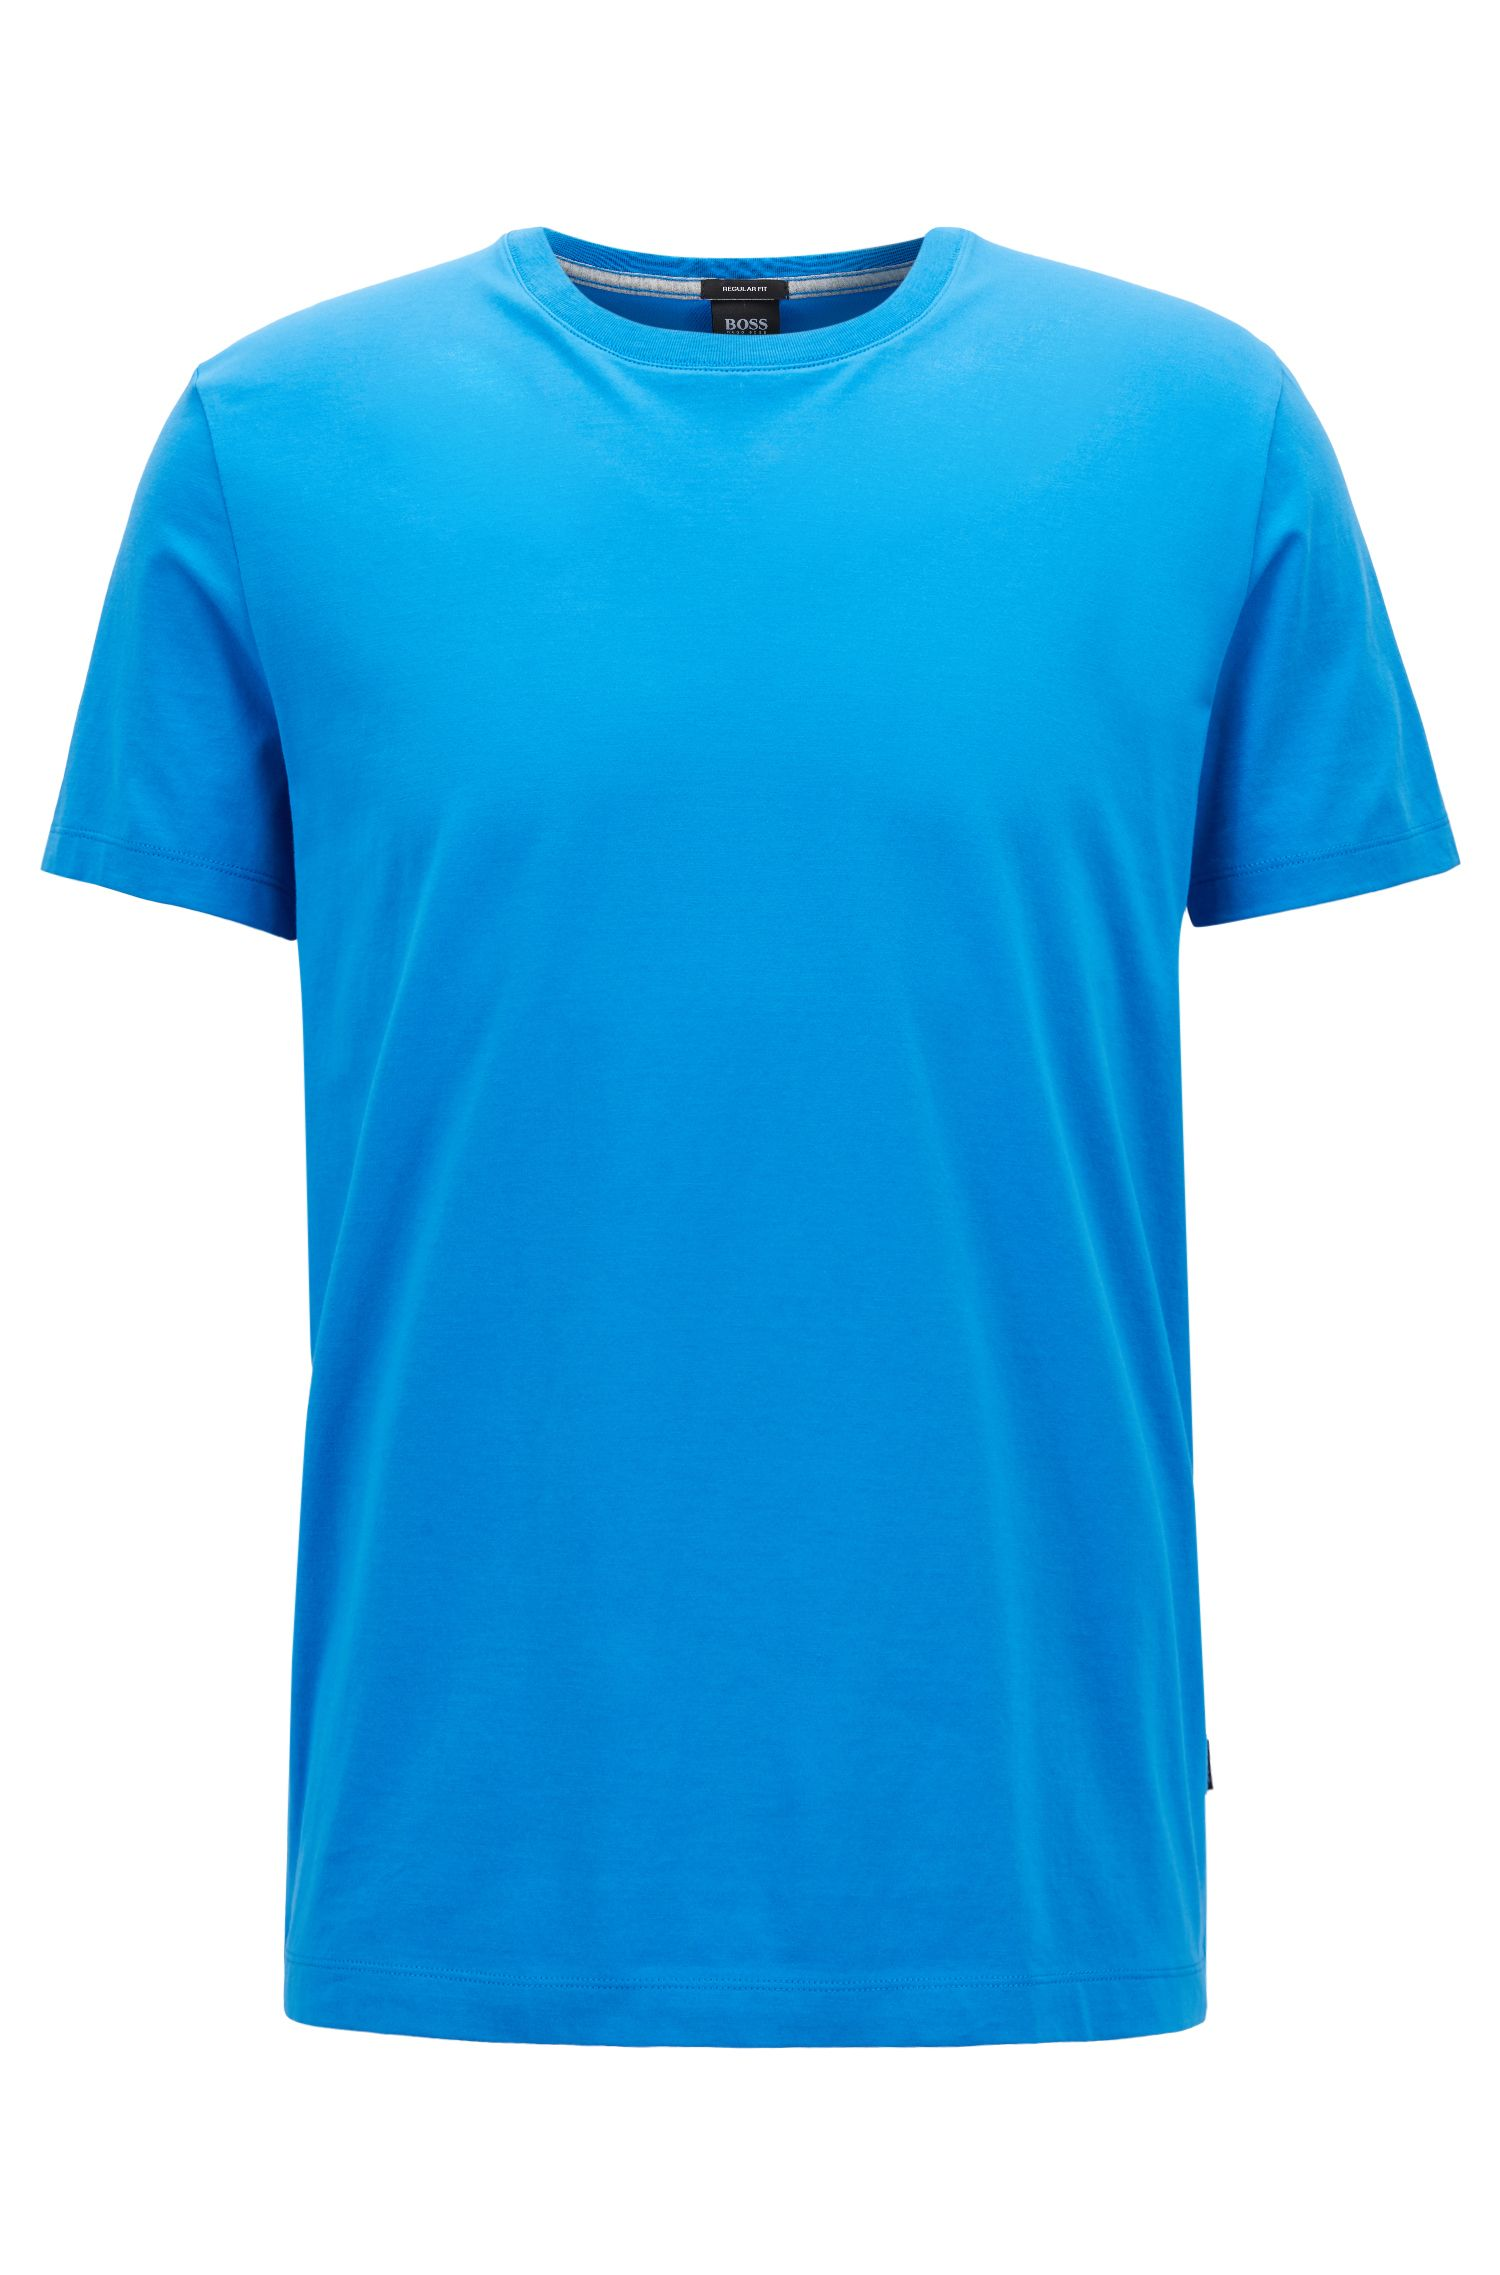 Regular-Fit T-Shirt aus weicher Baumwolle, Blau